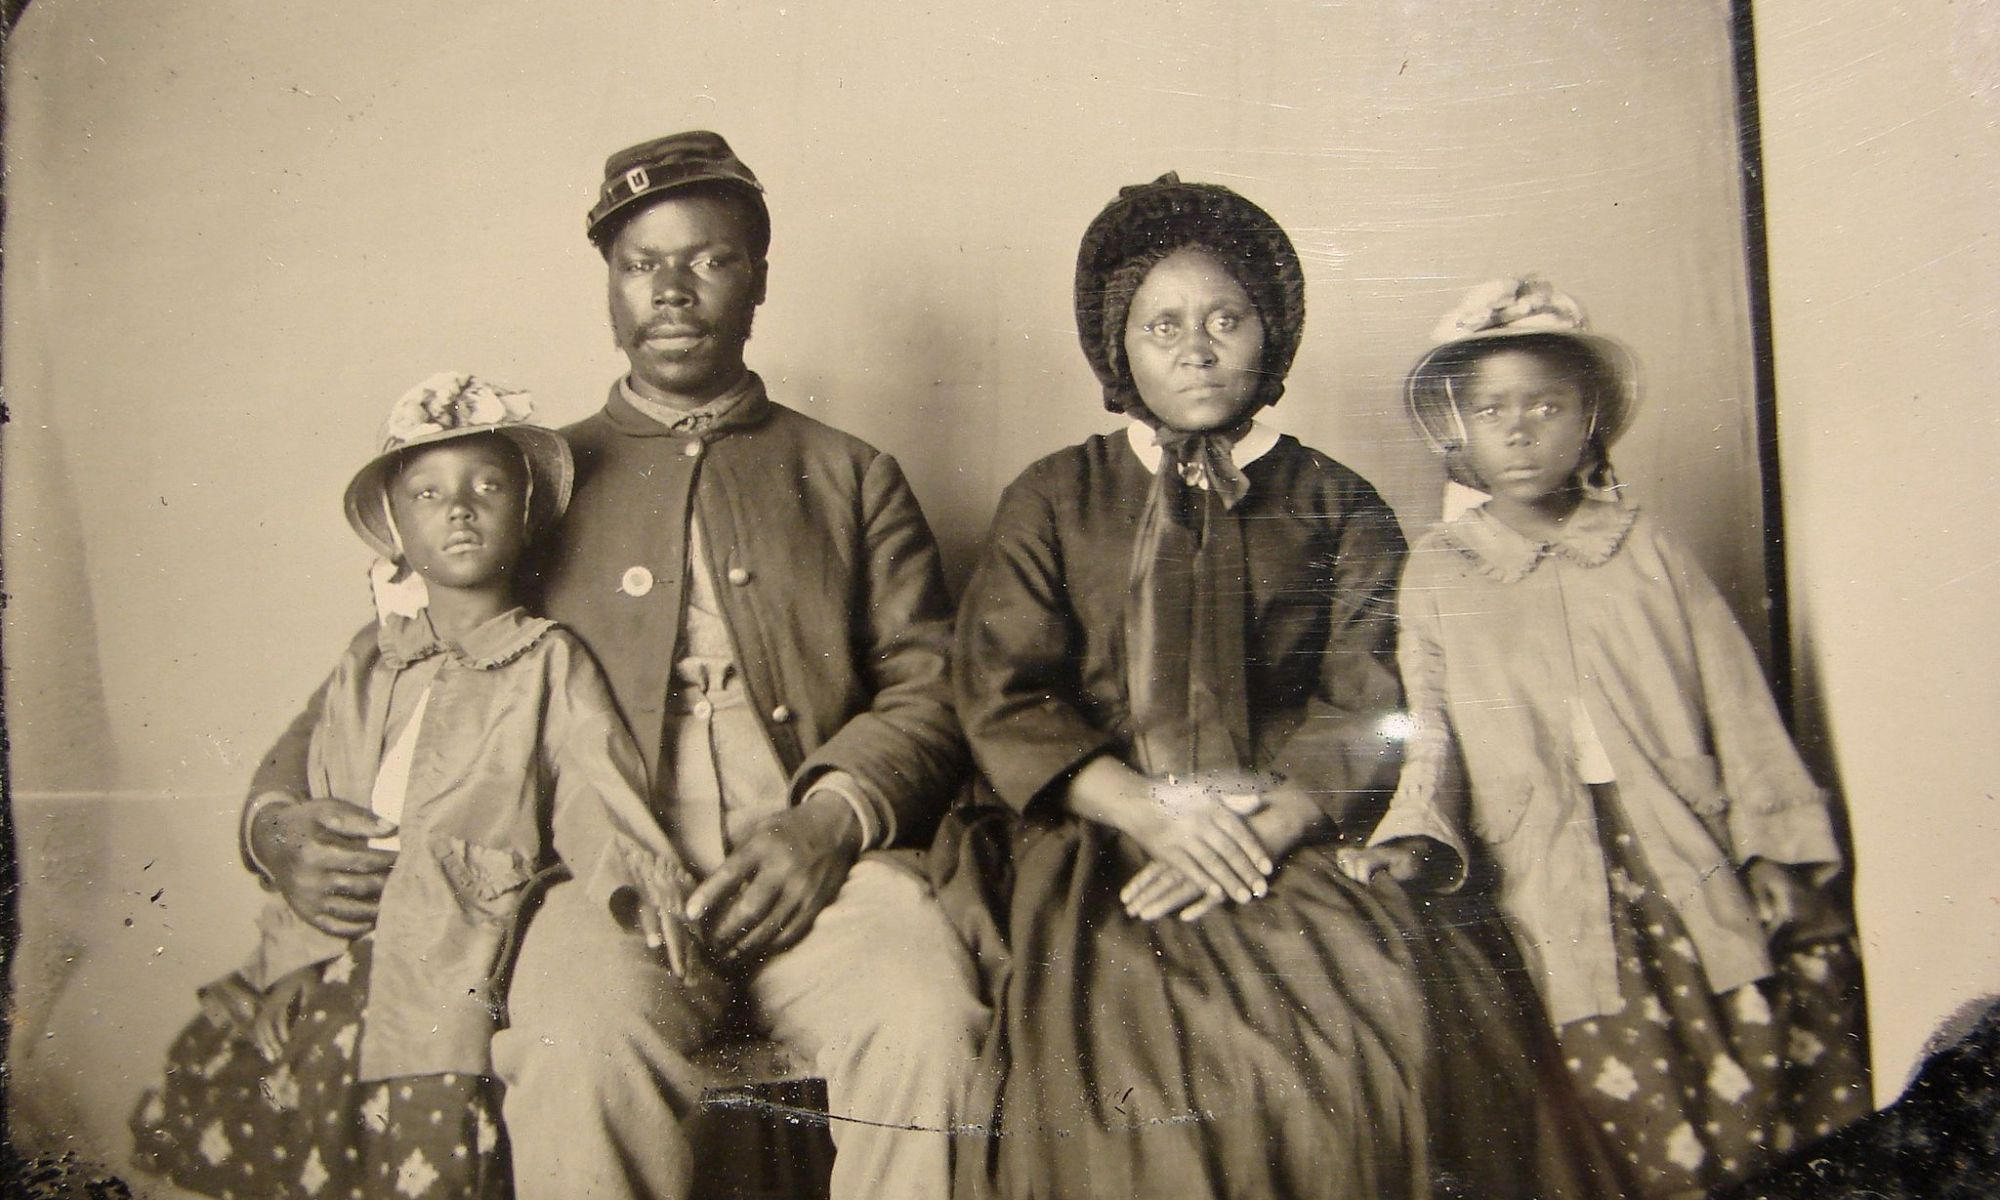 African American Union soldier and family